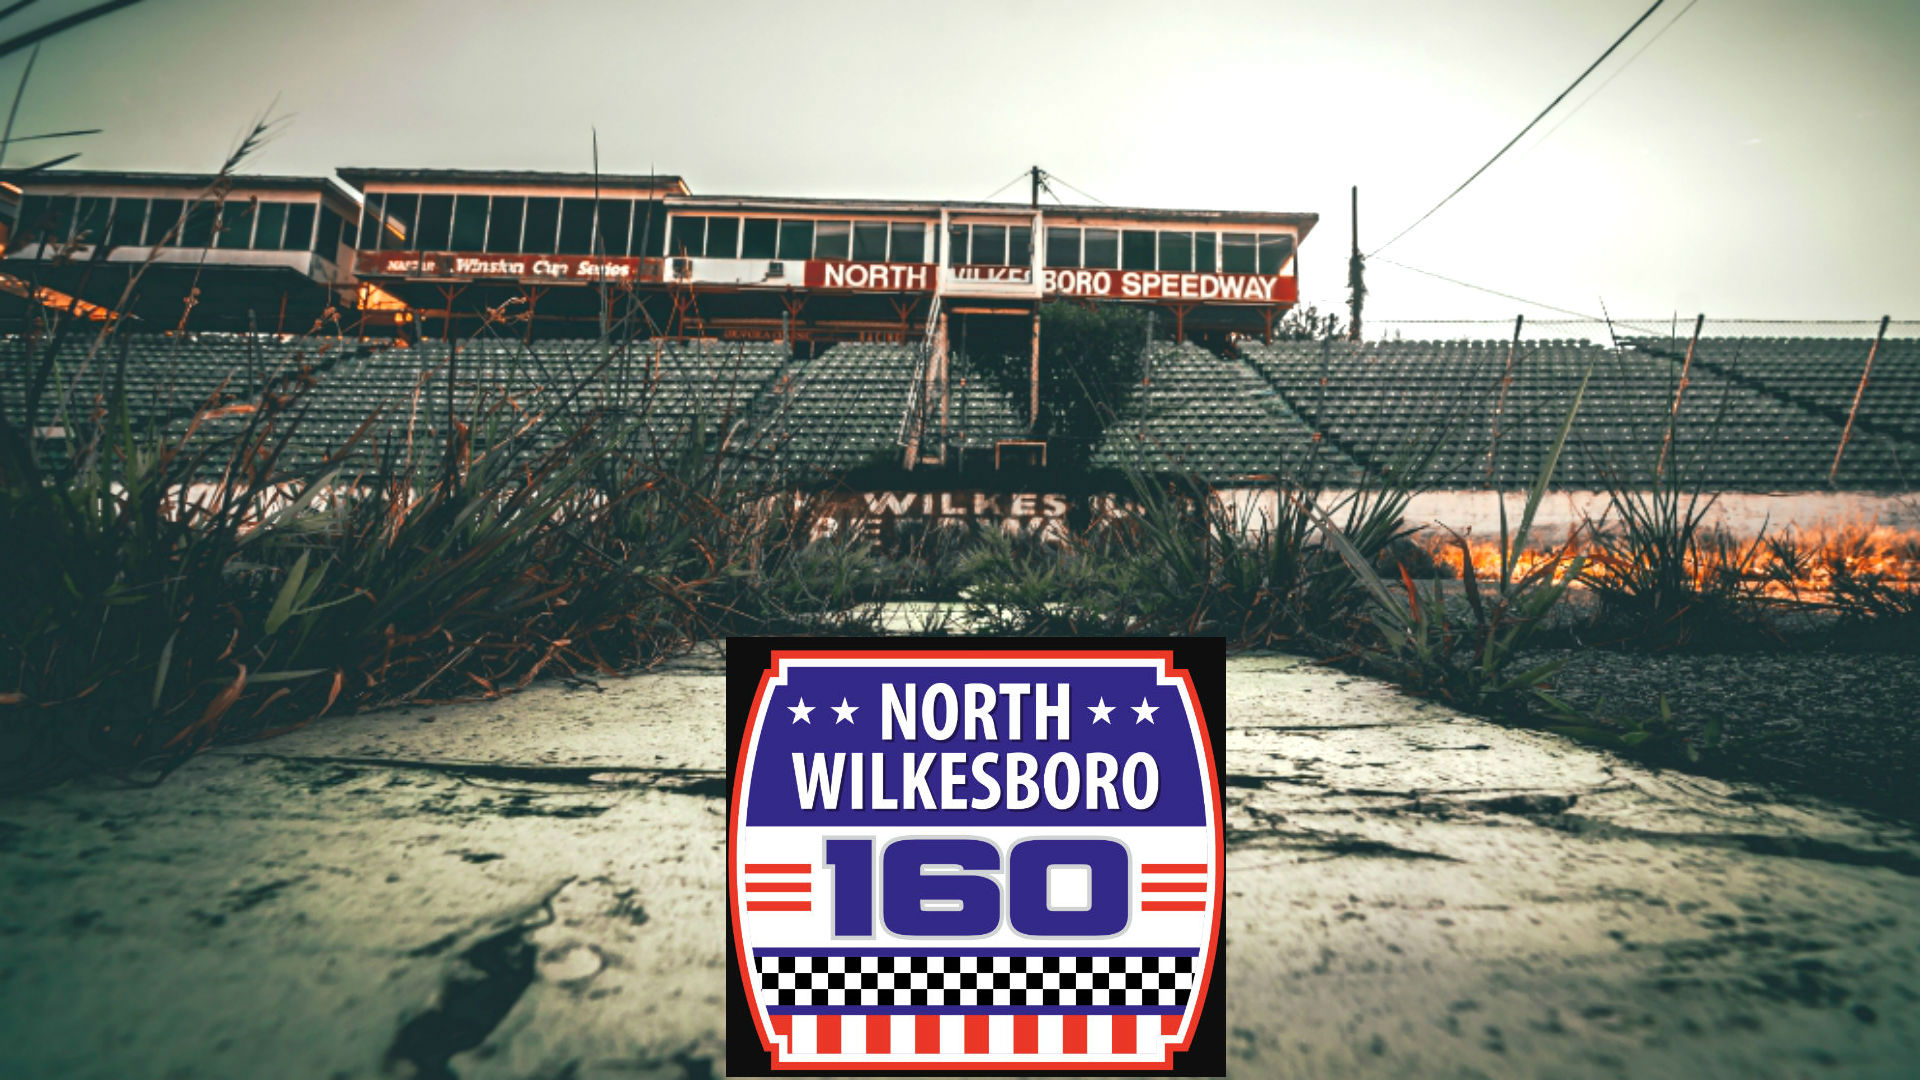 NASCAR iRacing at North Wilkesboro: TV channel, start time, lineup for today's virtual race 1